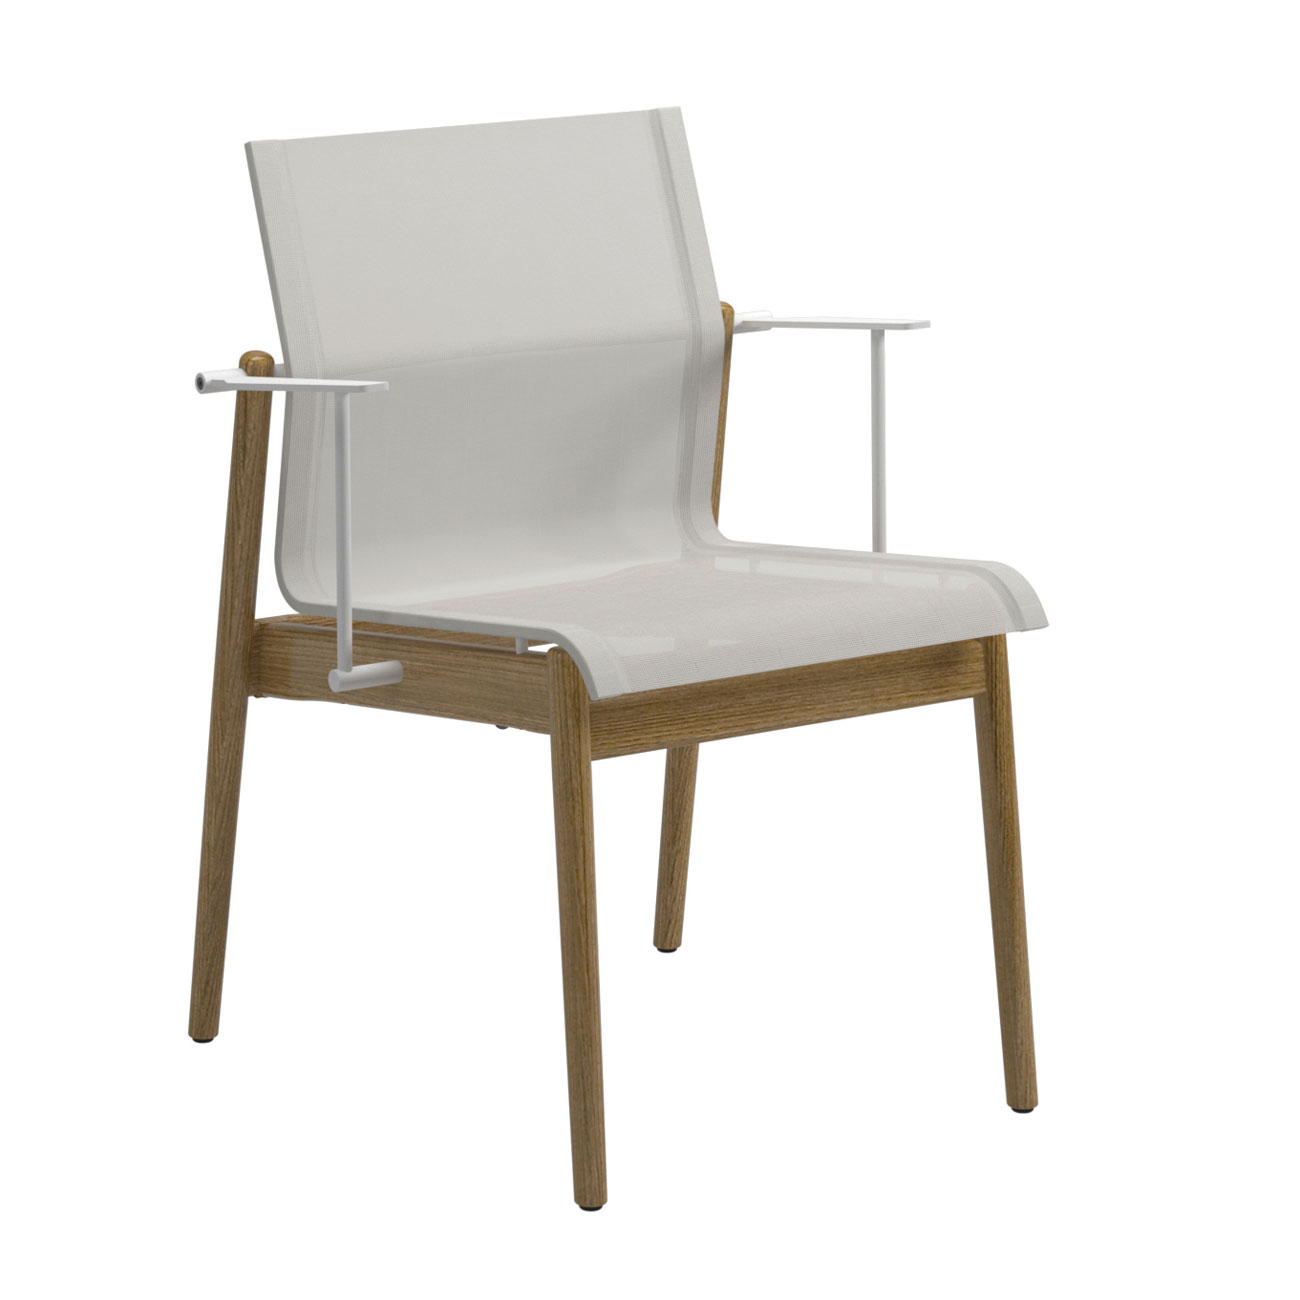 Gloster Sway Teak Stacking Chair With Arms White Frame